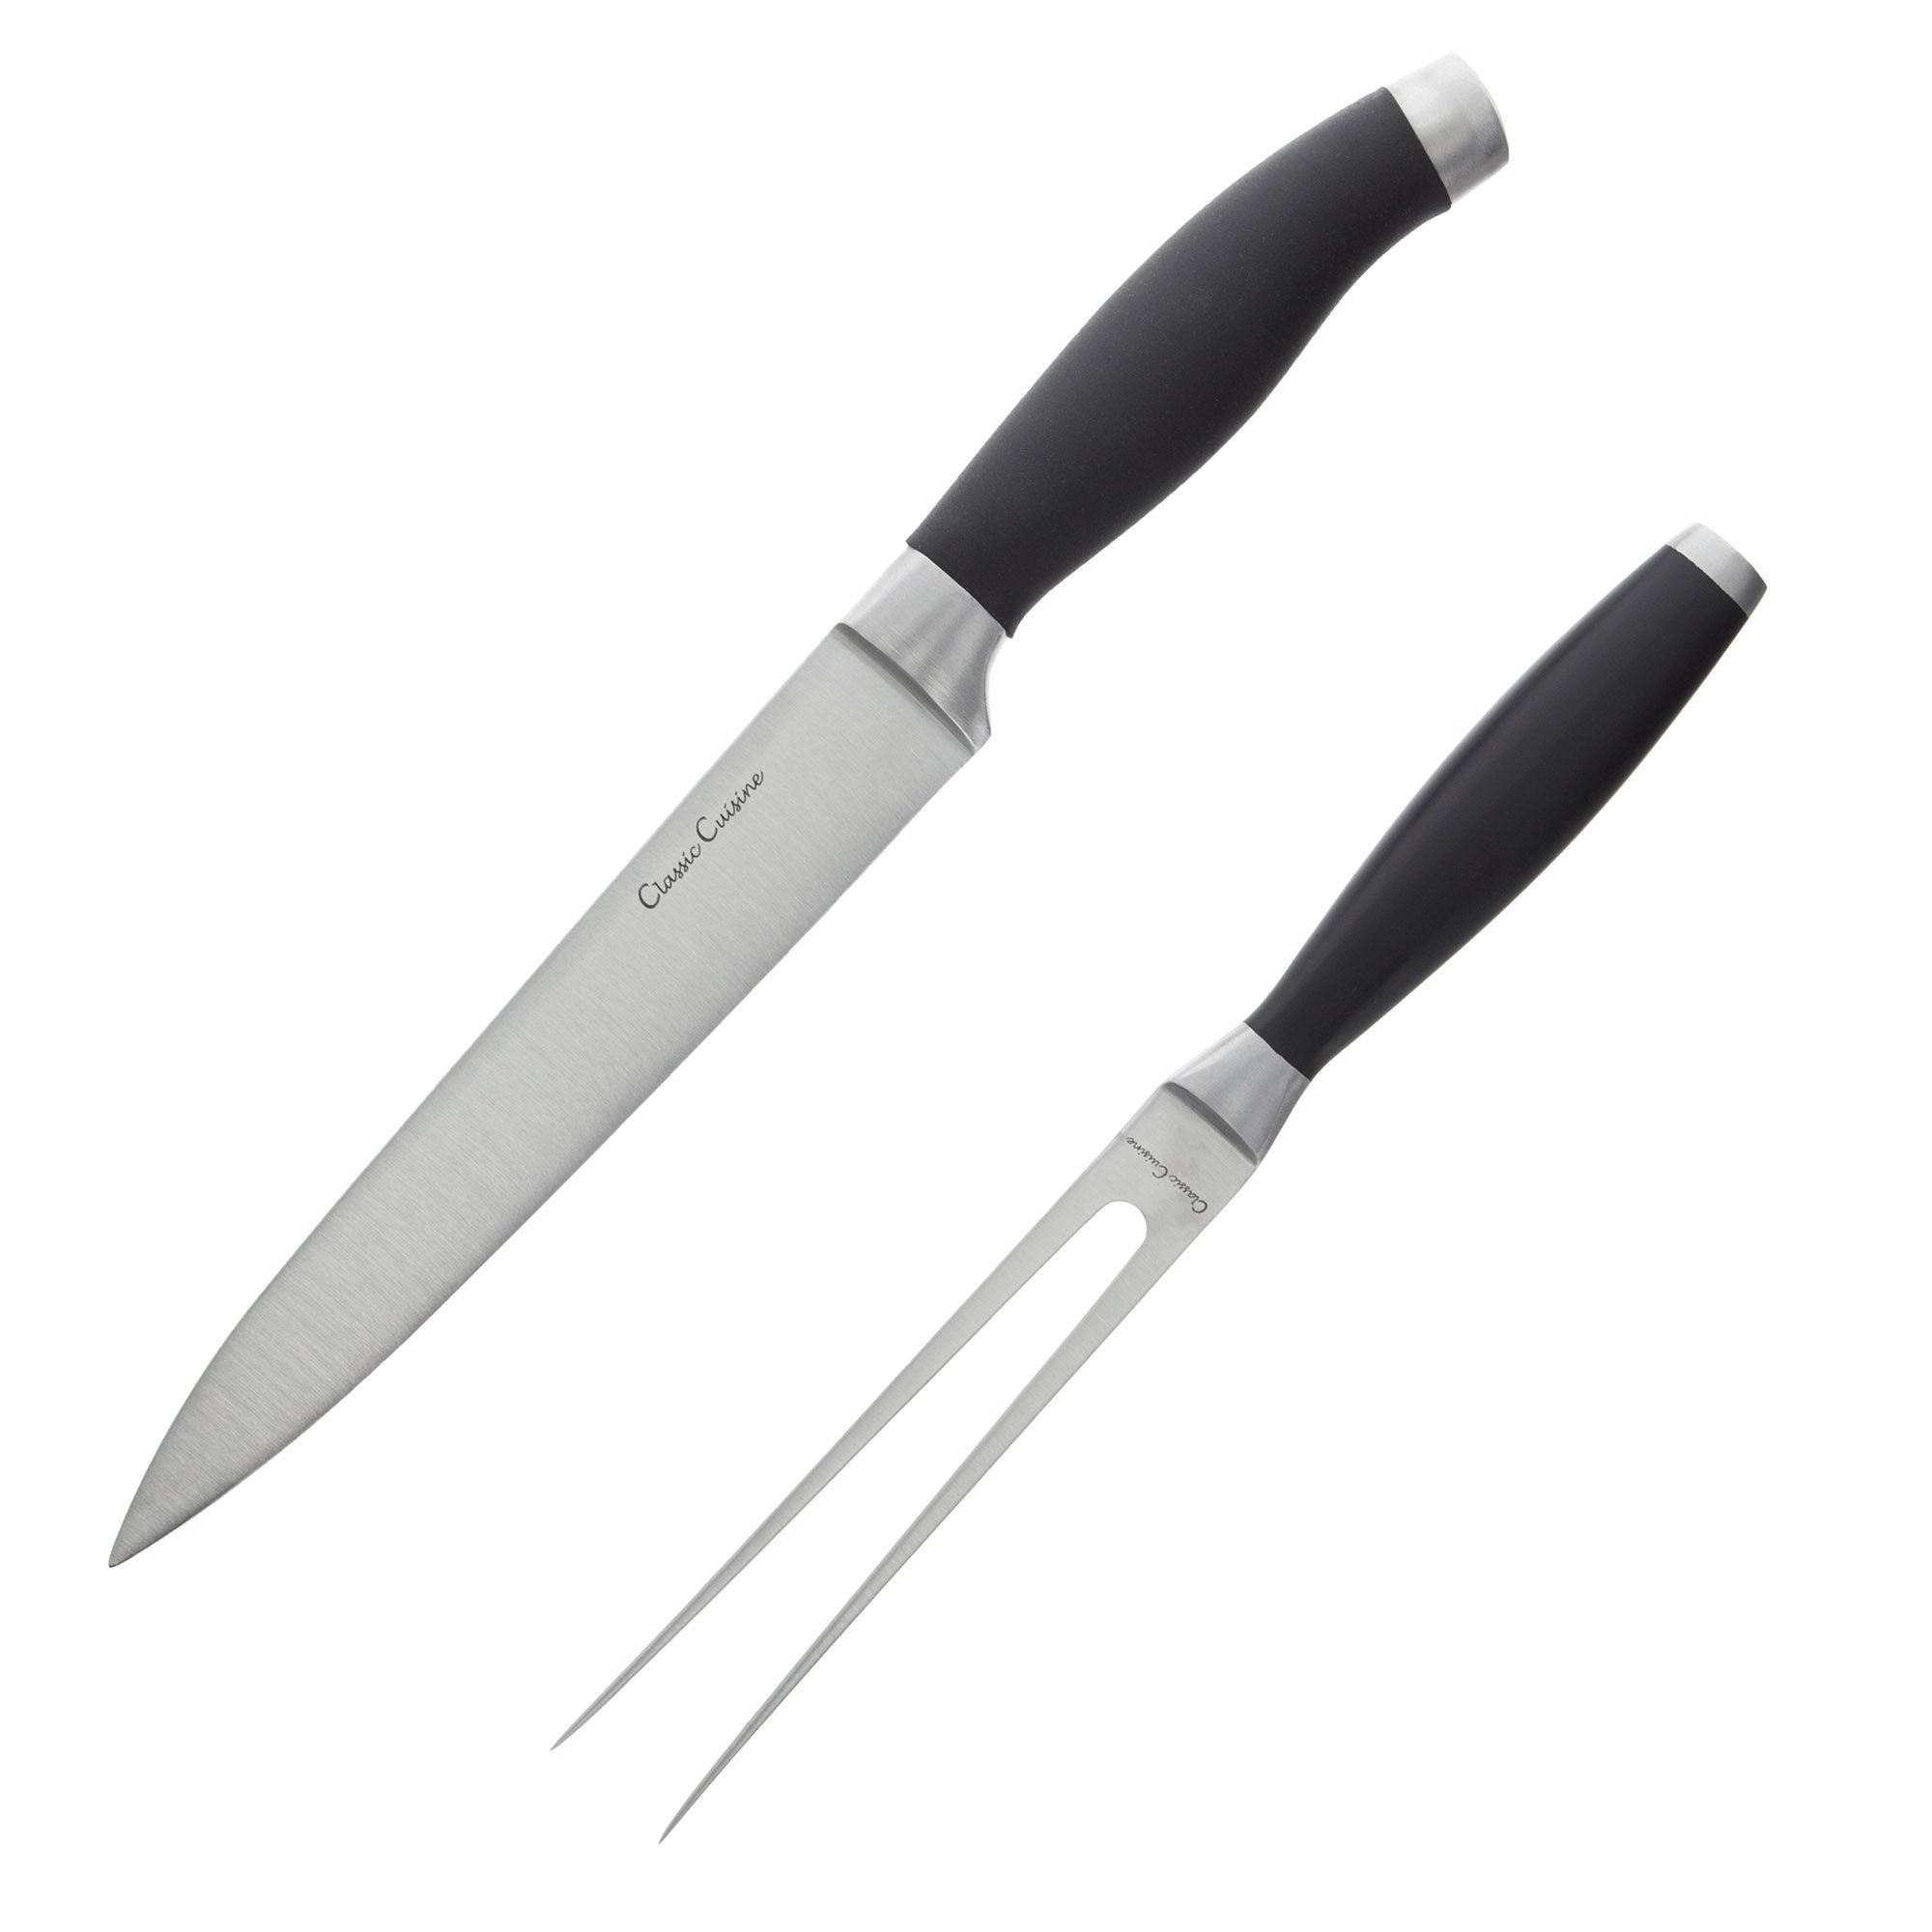 Professional Quality 2 Piece Carving Set Stainless Steel 8 inch Knife and Fork, Hand Forged for Home or Restaurant by Classic Cuisine by Classic Cuisine (Image #2)